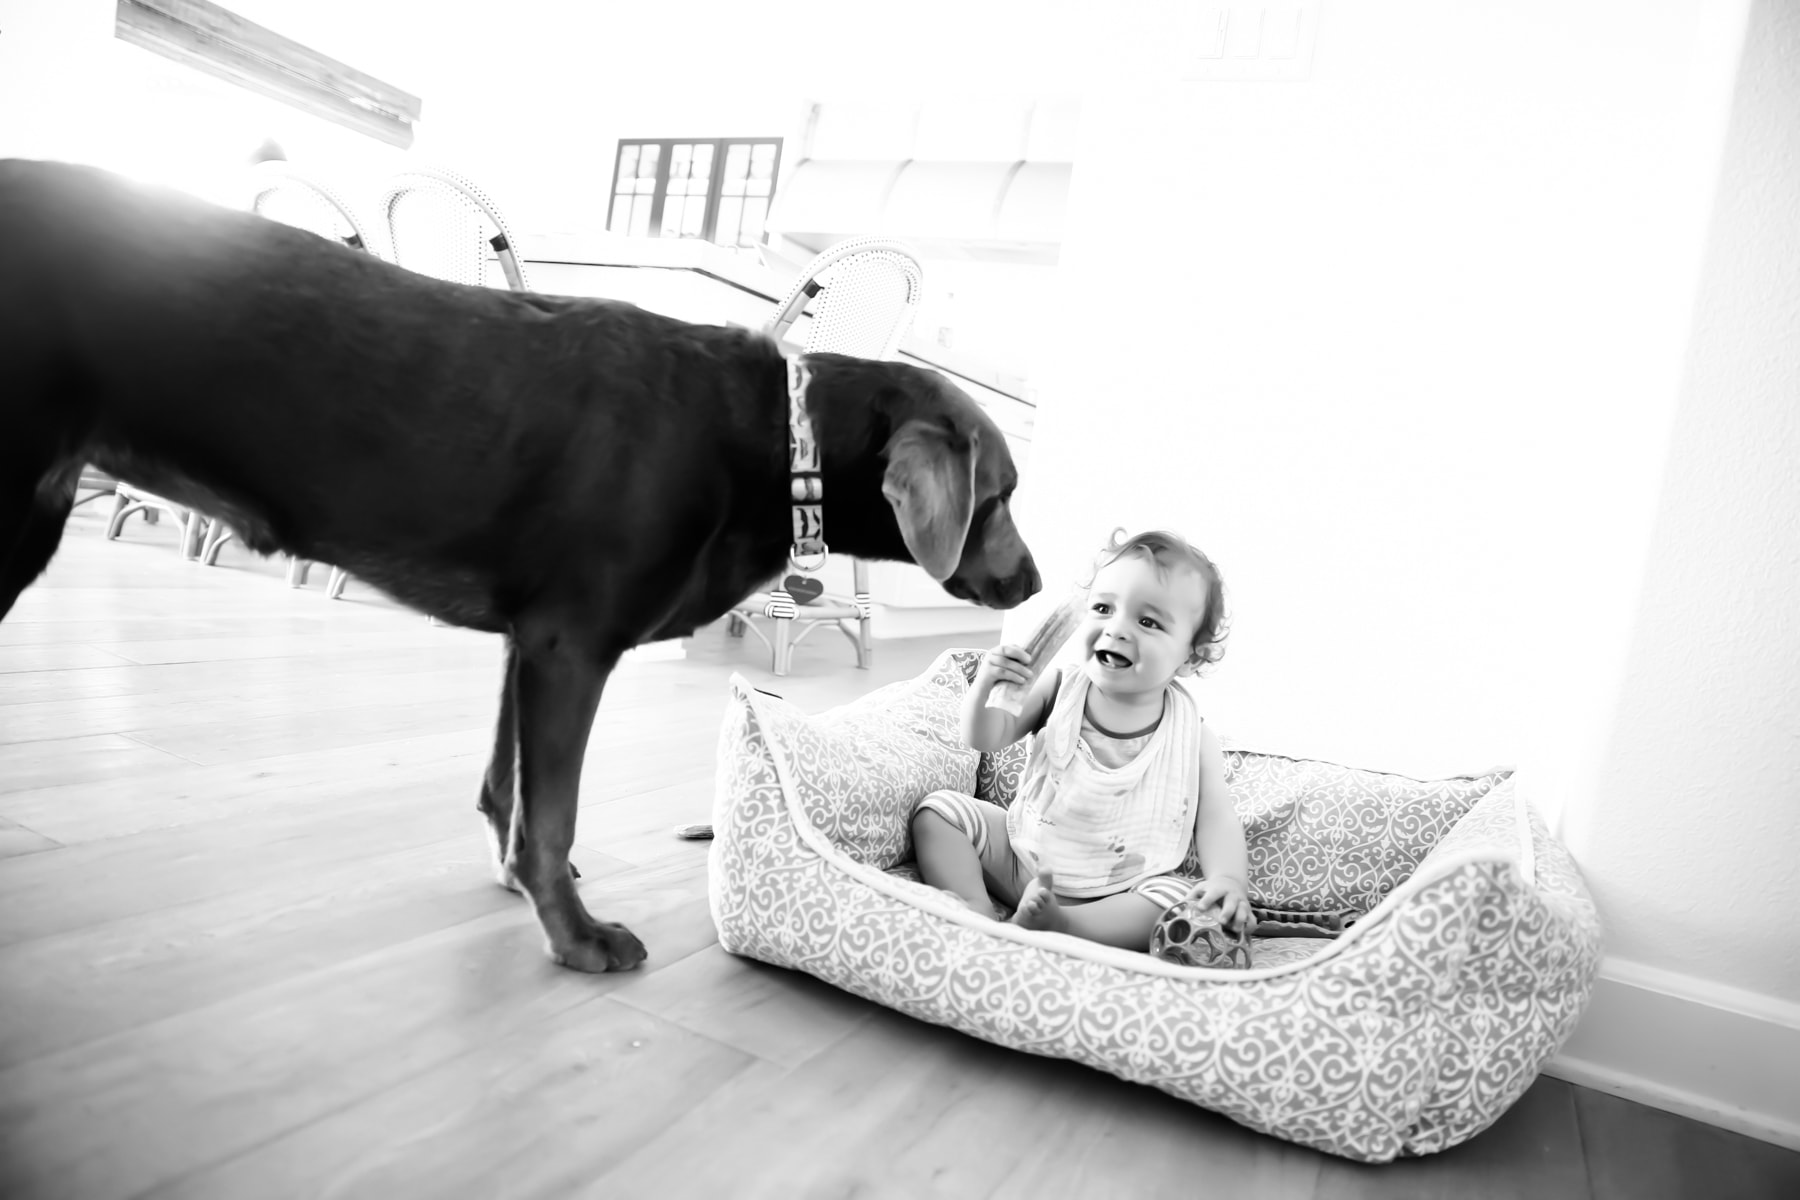 Kid on Dog's Bed Smiling at the Dog #royalcanin #dog #dogfood #labrador #citygirlgonemom #Weimaraner